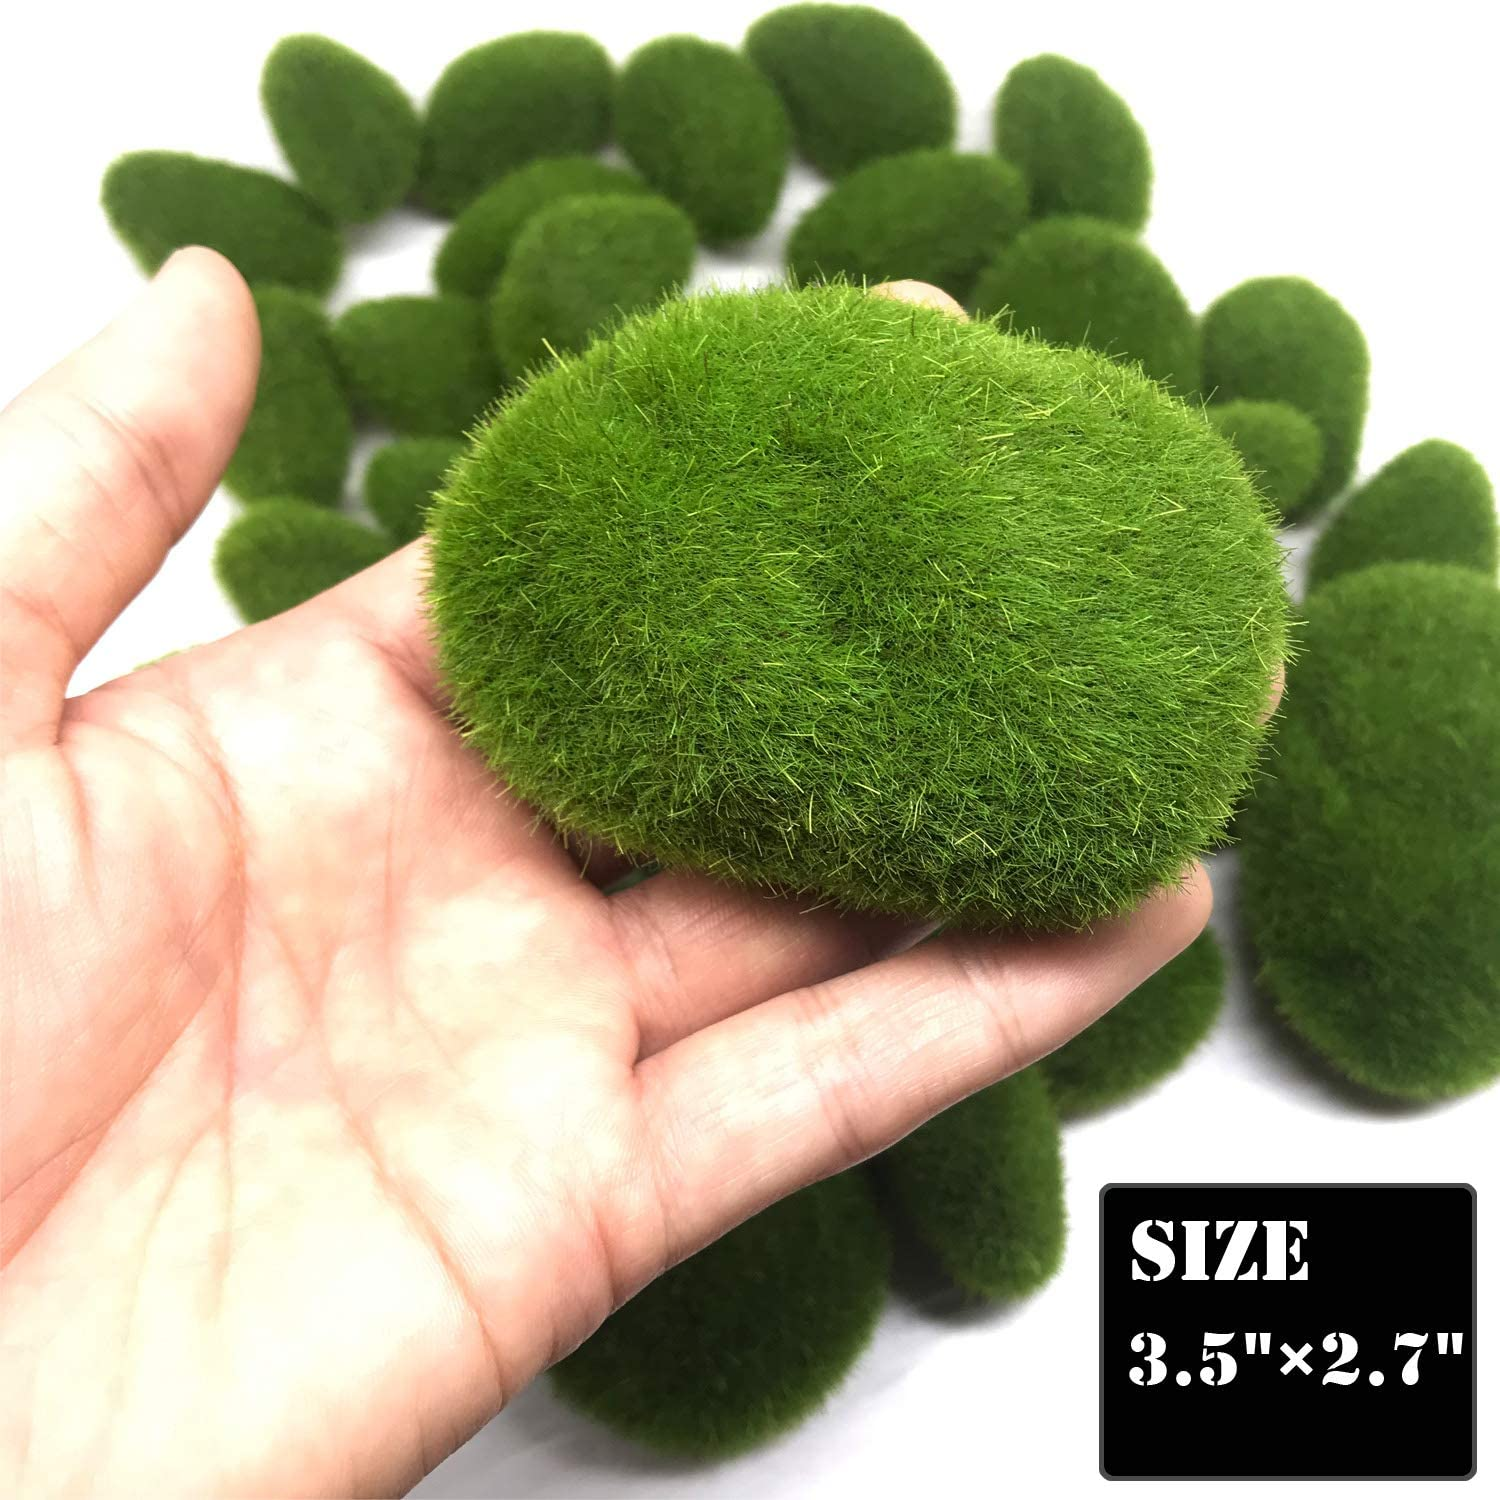 Fake Moss Decor for Floral Arrangements 25-2 Size Woohome 25 PCS 2 Size Artificial Moss Rocks Decorative Green Moss Balls Fairy Gardens and Crafting